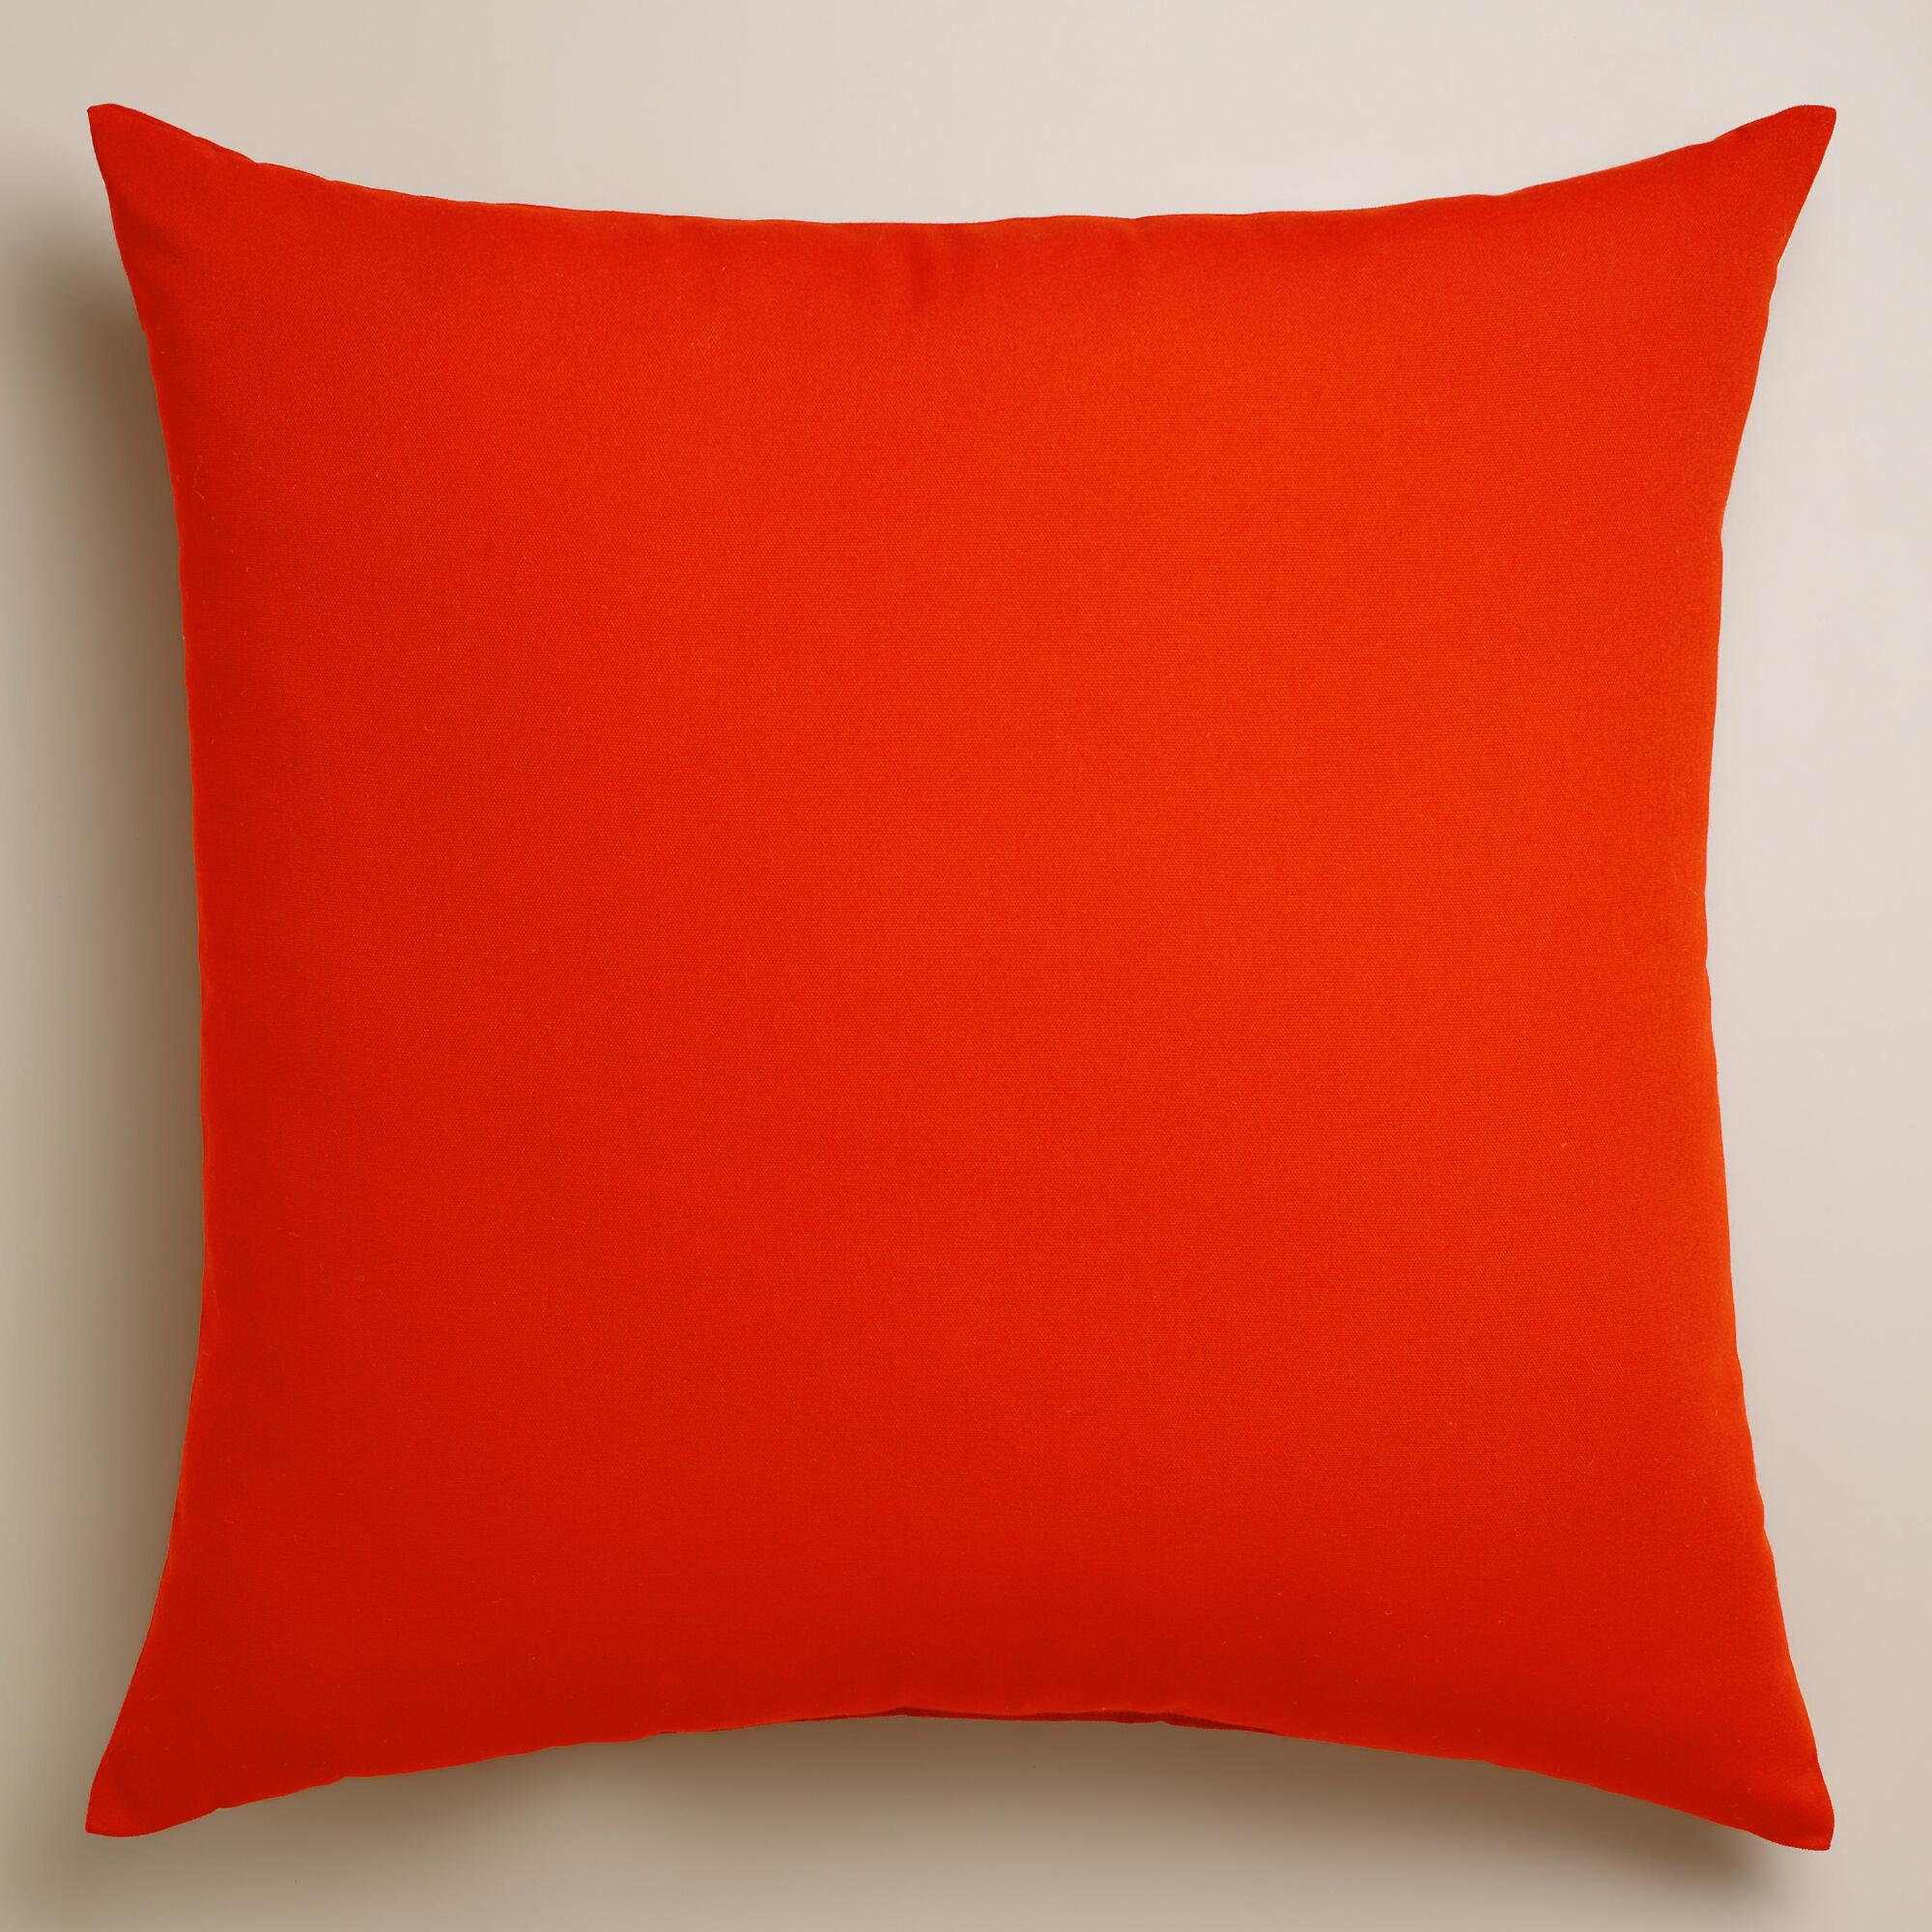 Orange Decorative Pillows Couch : Orange Pillows